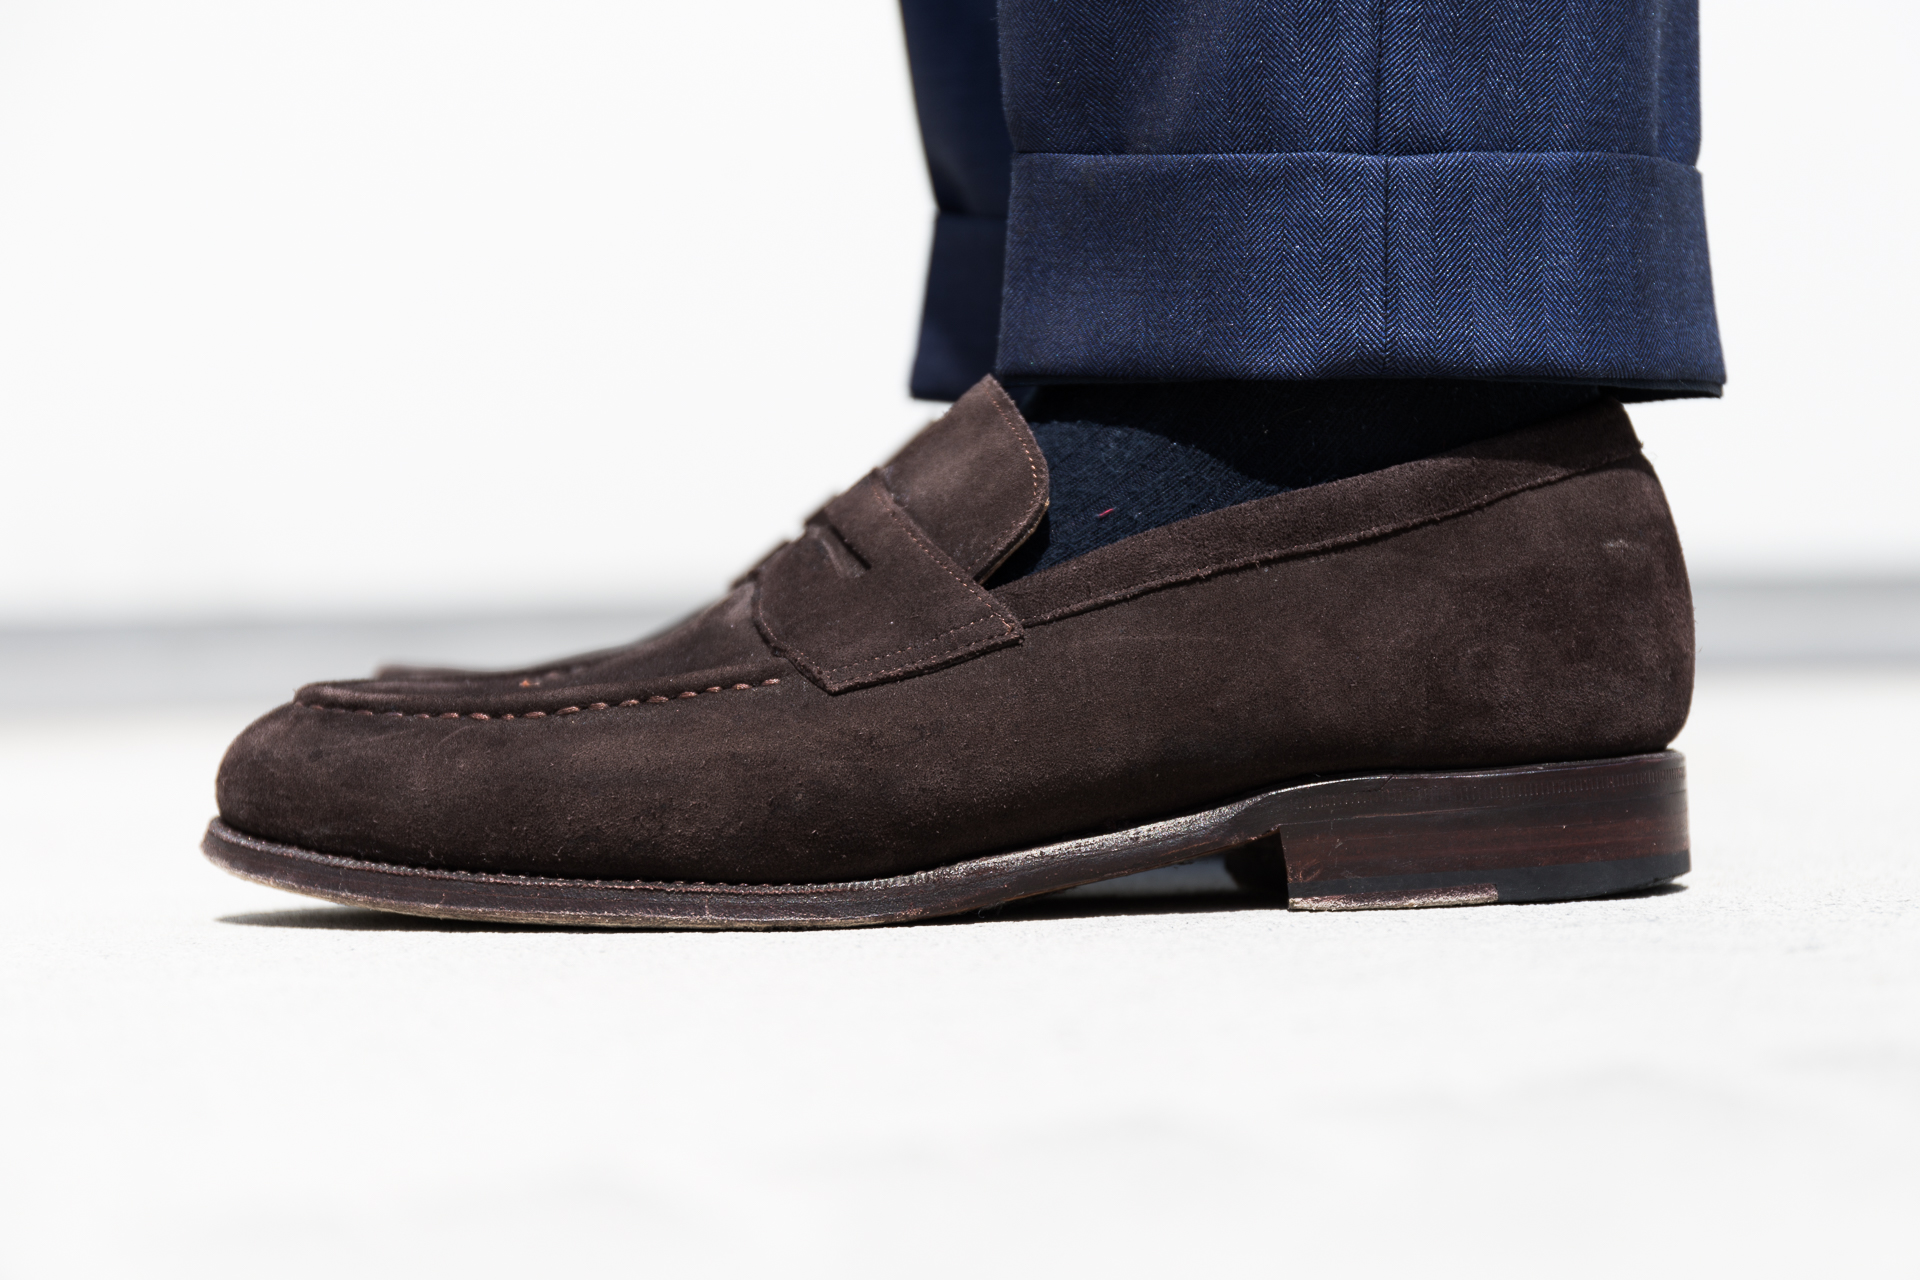 Review: Meermin Mallorca Shoes